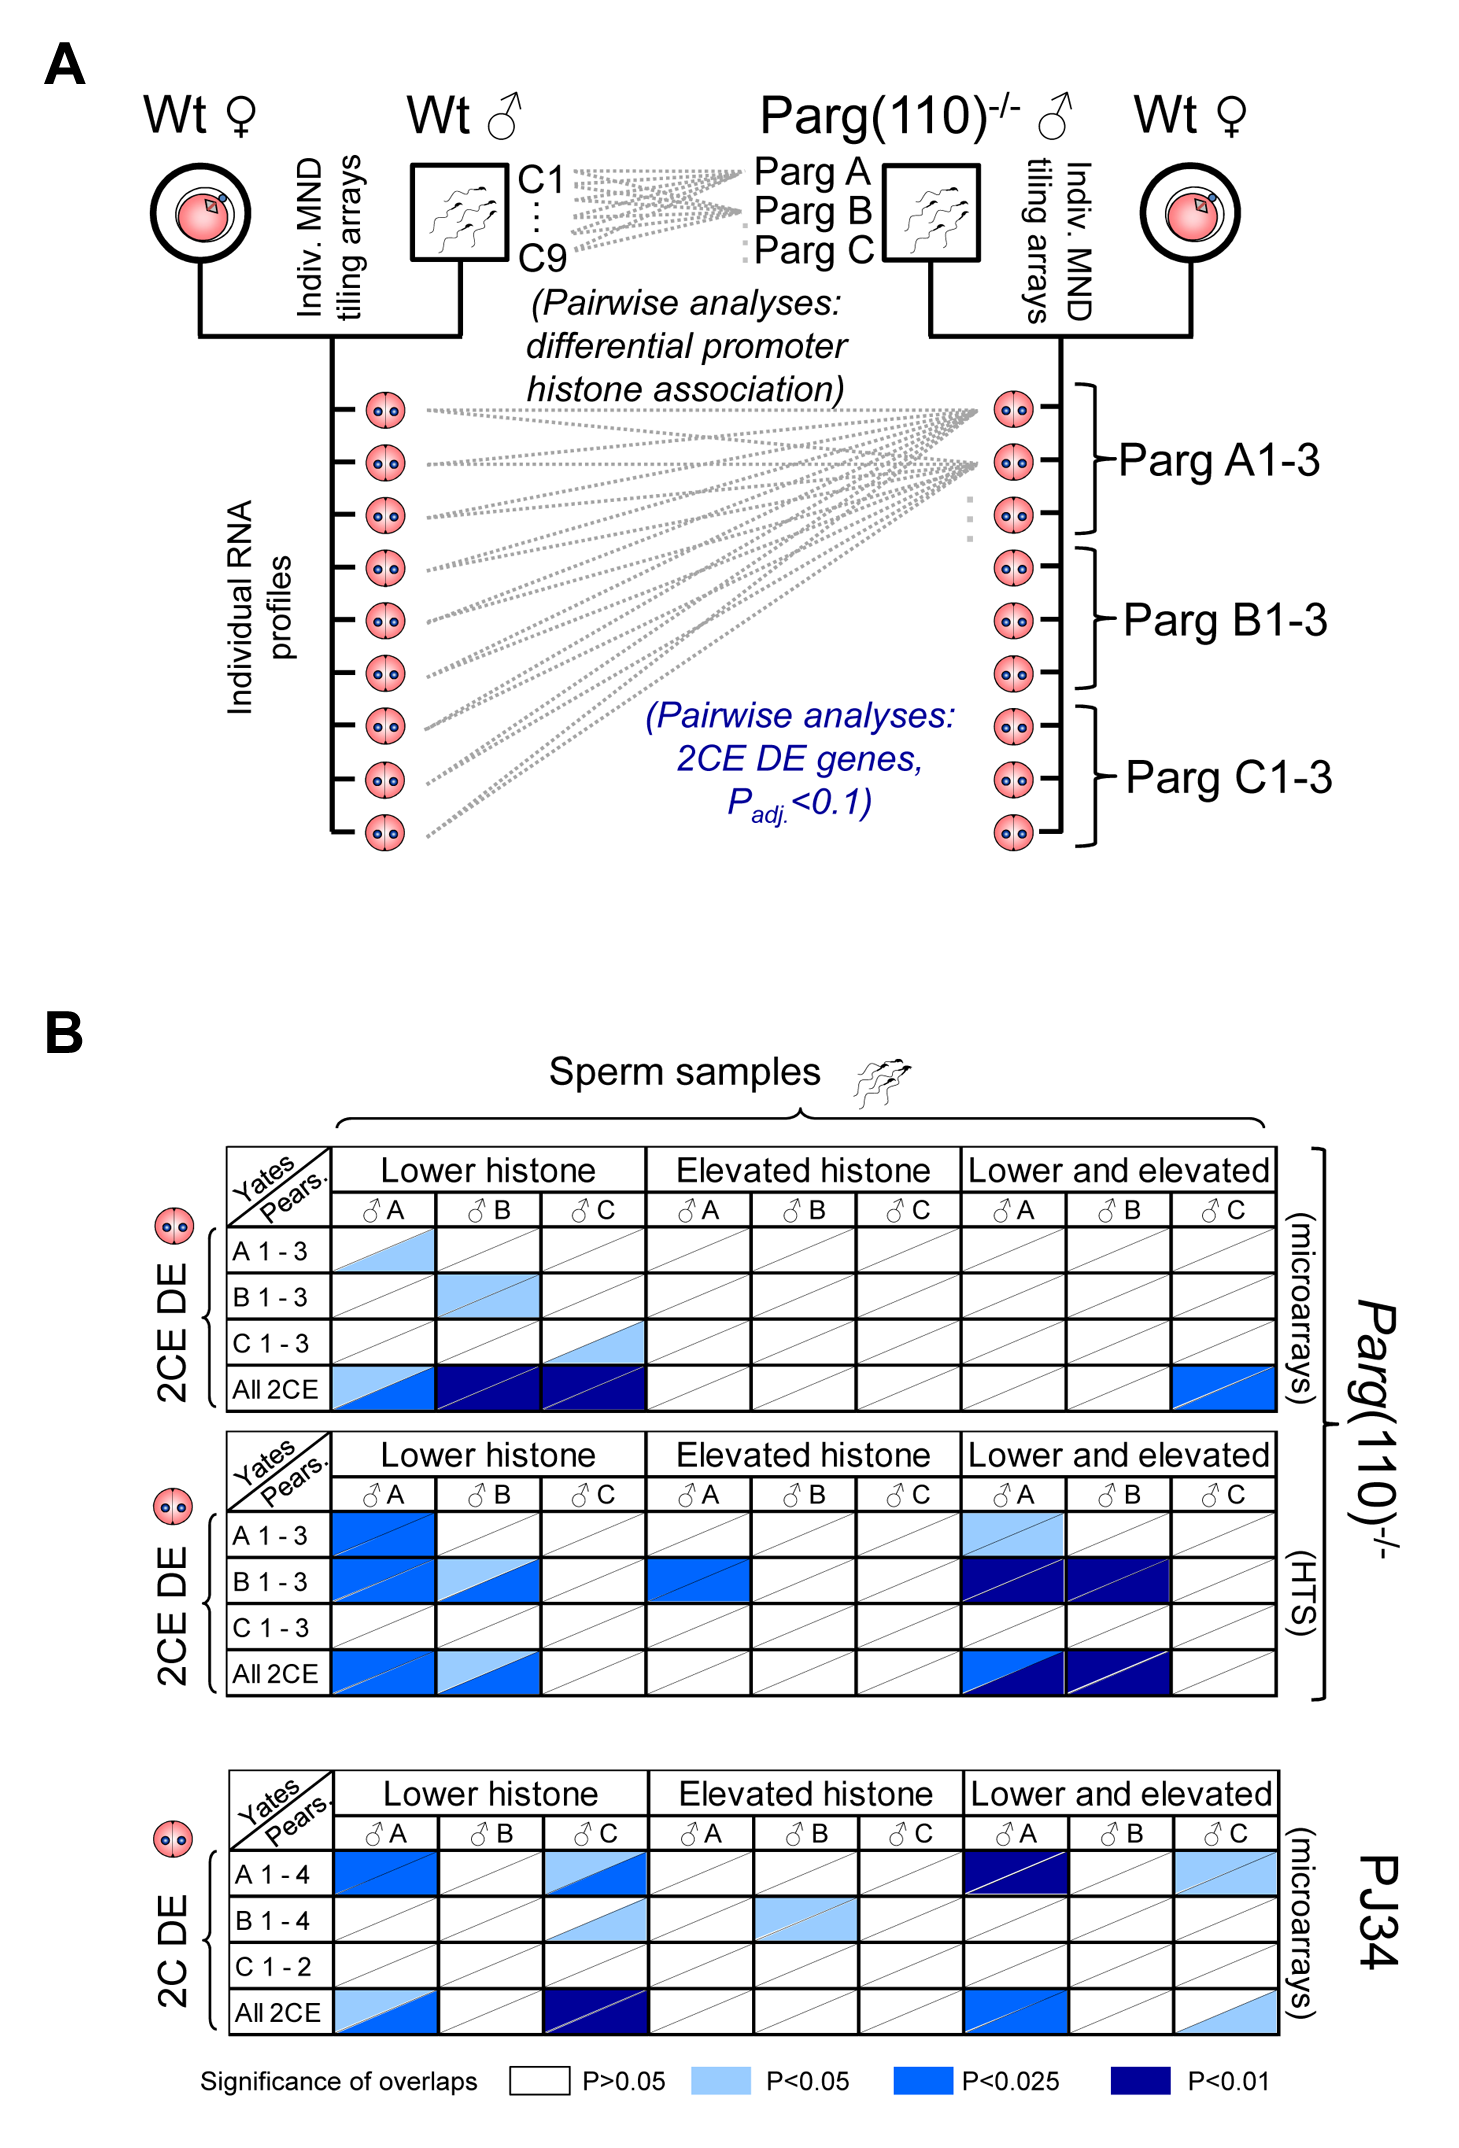 Differential sperm histone association of genes in <i>Parg</i>(110)<sup>−/−</sup> and PJ34-treated males is significantly associated with differential expression of these genes in offspring 2-cell embryos.